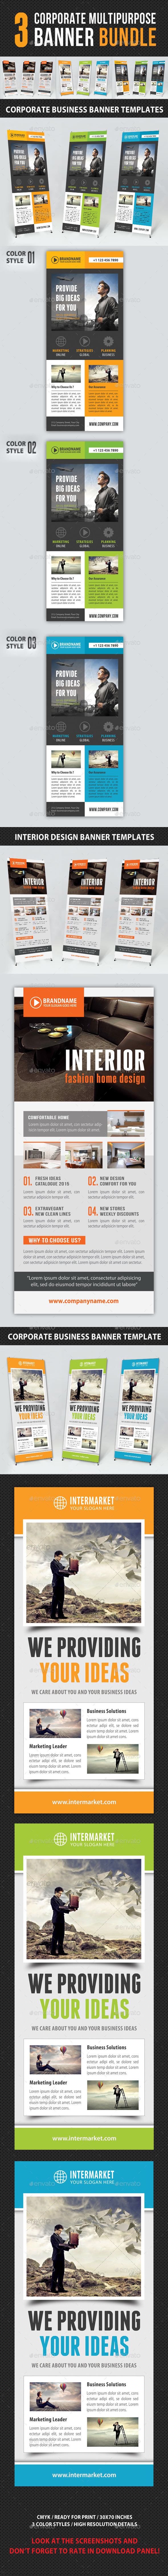 3 in 1 Corporate Multipurpose Banner Bundle - Signage Print Templates